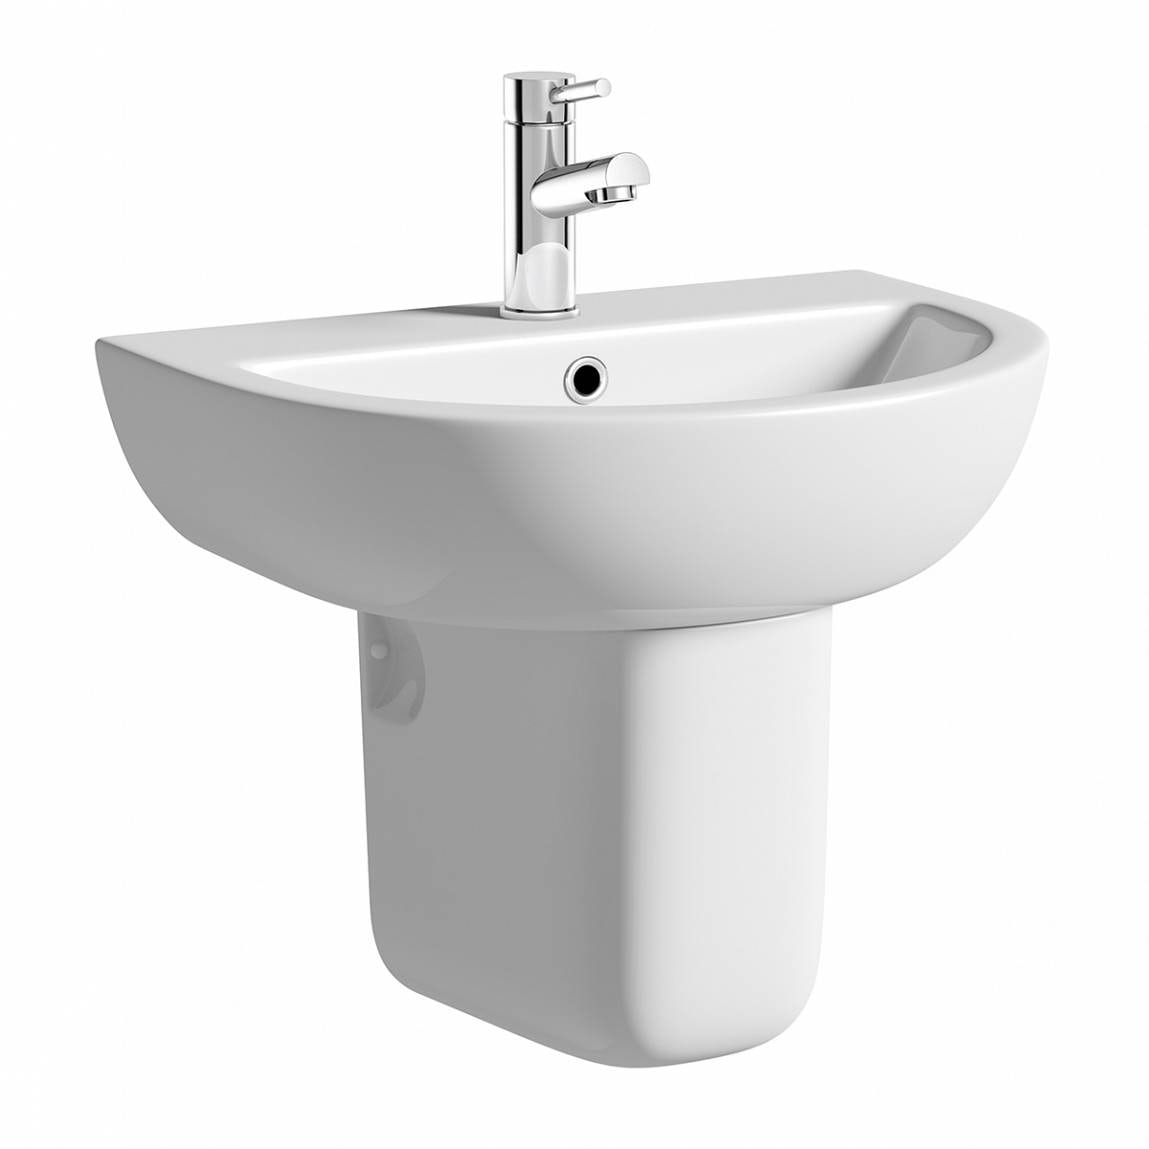 Orchard Elena 1 tap hole semi pedestal basin with basin waste